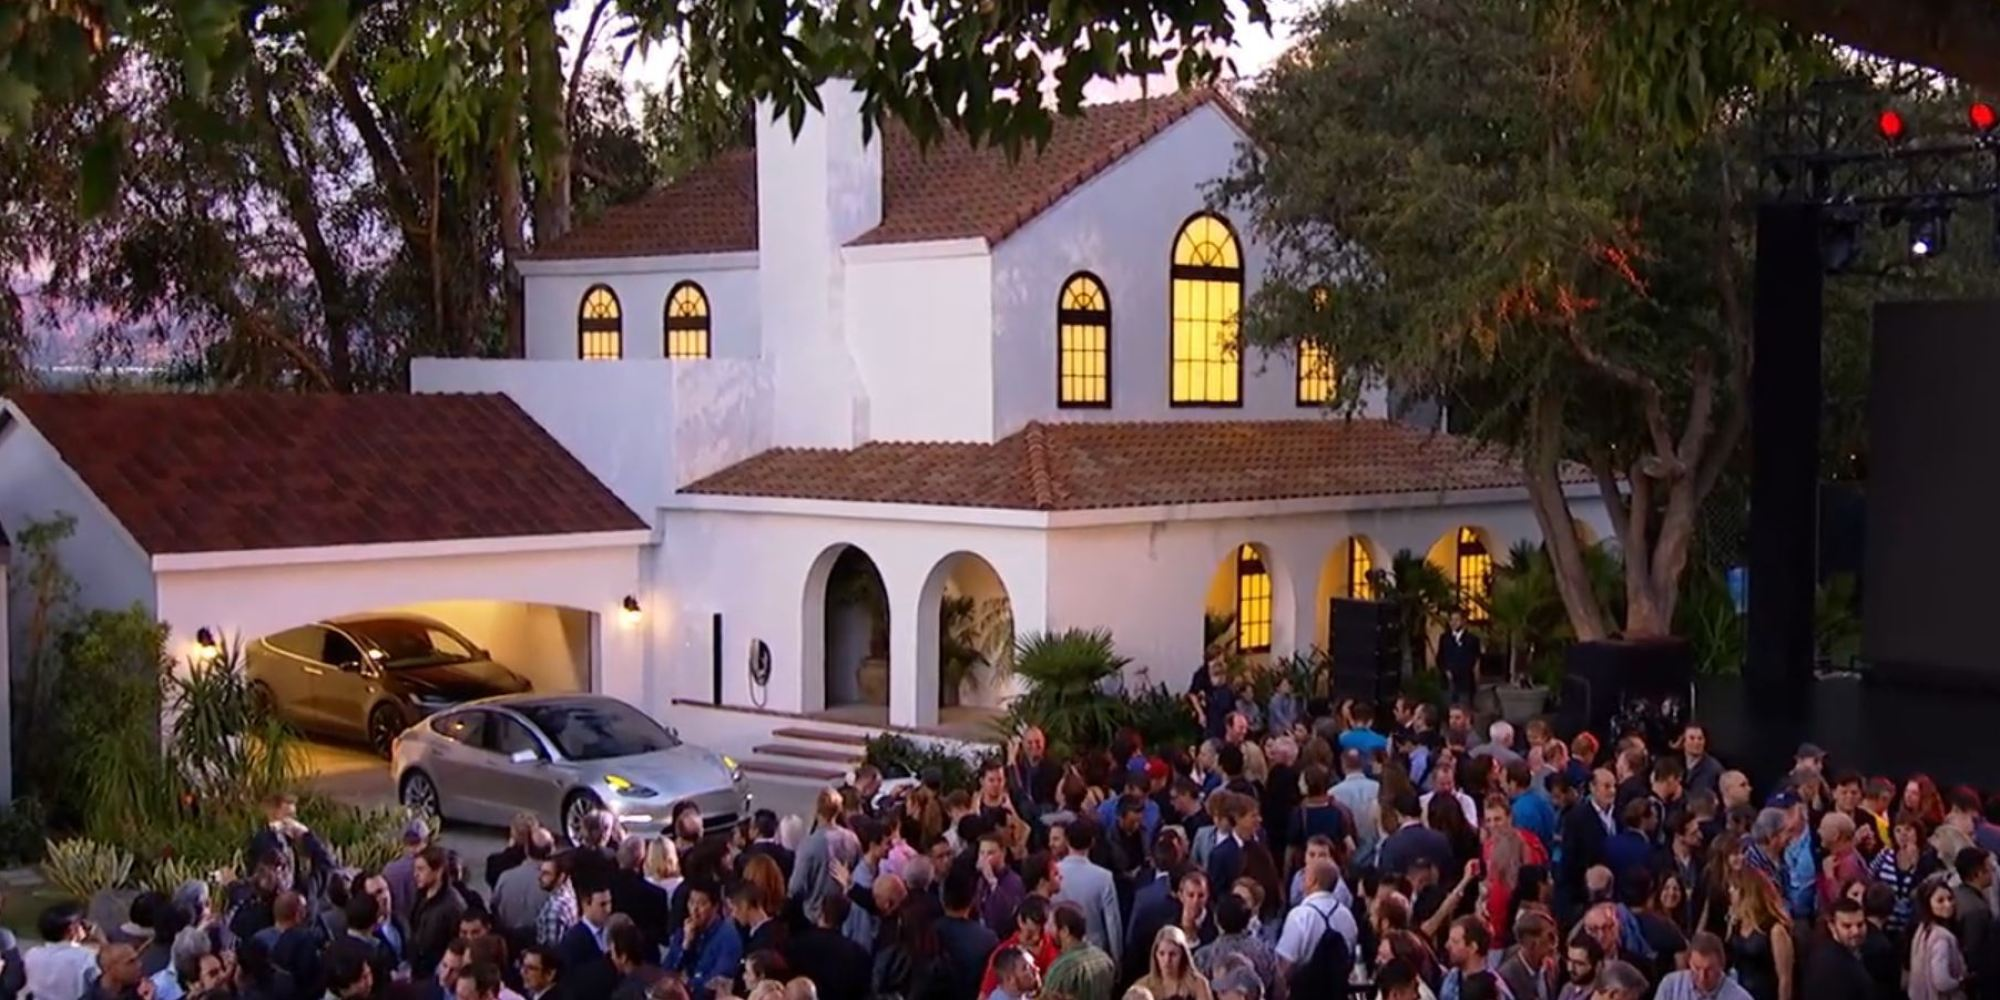 Tesla Solar Panel Roof >> Tesla's Solar Roof Will Cost Less Than A Normal Roof, Elon Musk Says